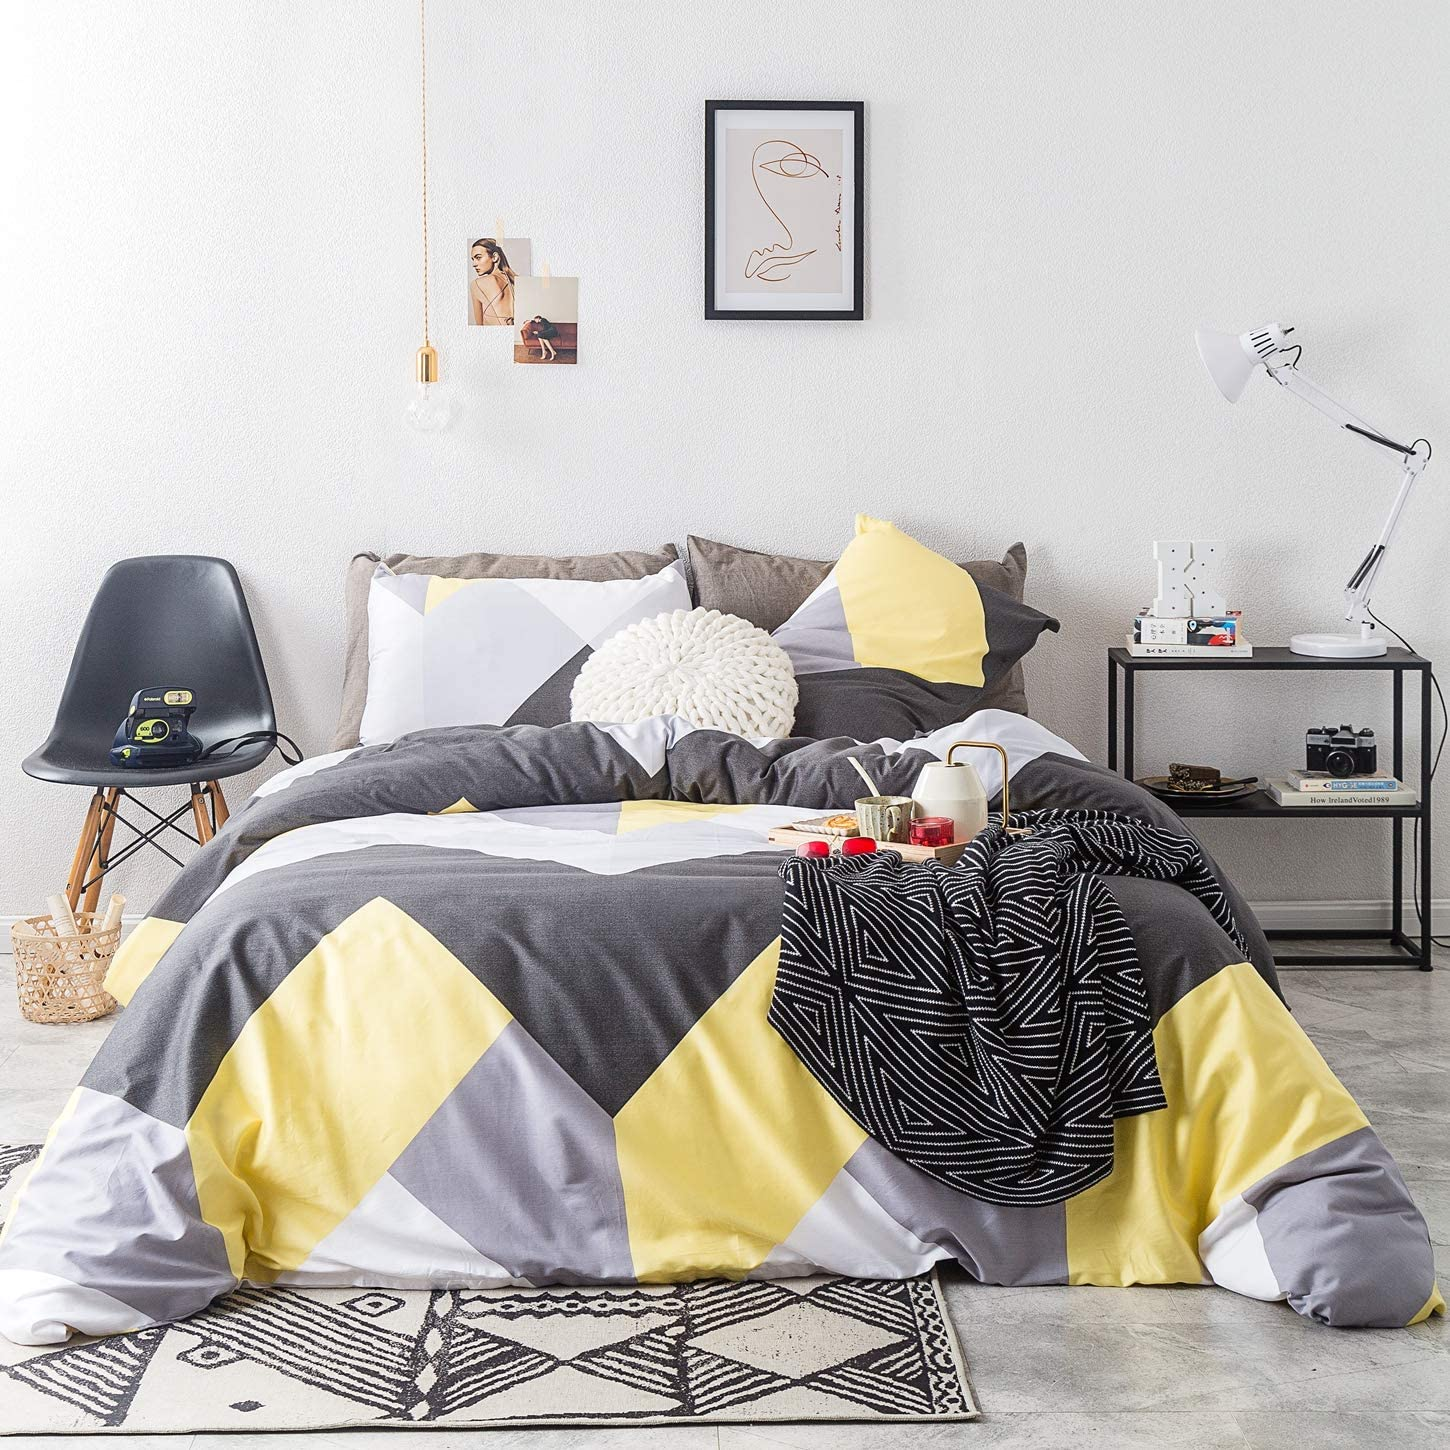 SUSYBAO 3 Piece Duvet Cover Set 100% Cotton King Size Gray and Yellow Geometric Bedding Set with Zipper Ties 1 Silver Chevron Duvet Cover 2 Pillowcases Luxury Quality Soft Breathable Easy Care